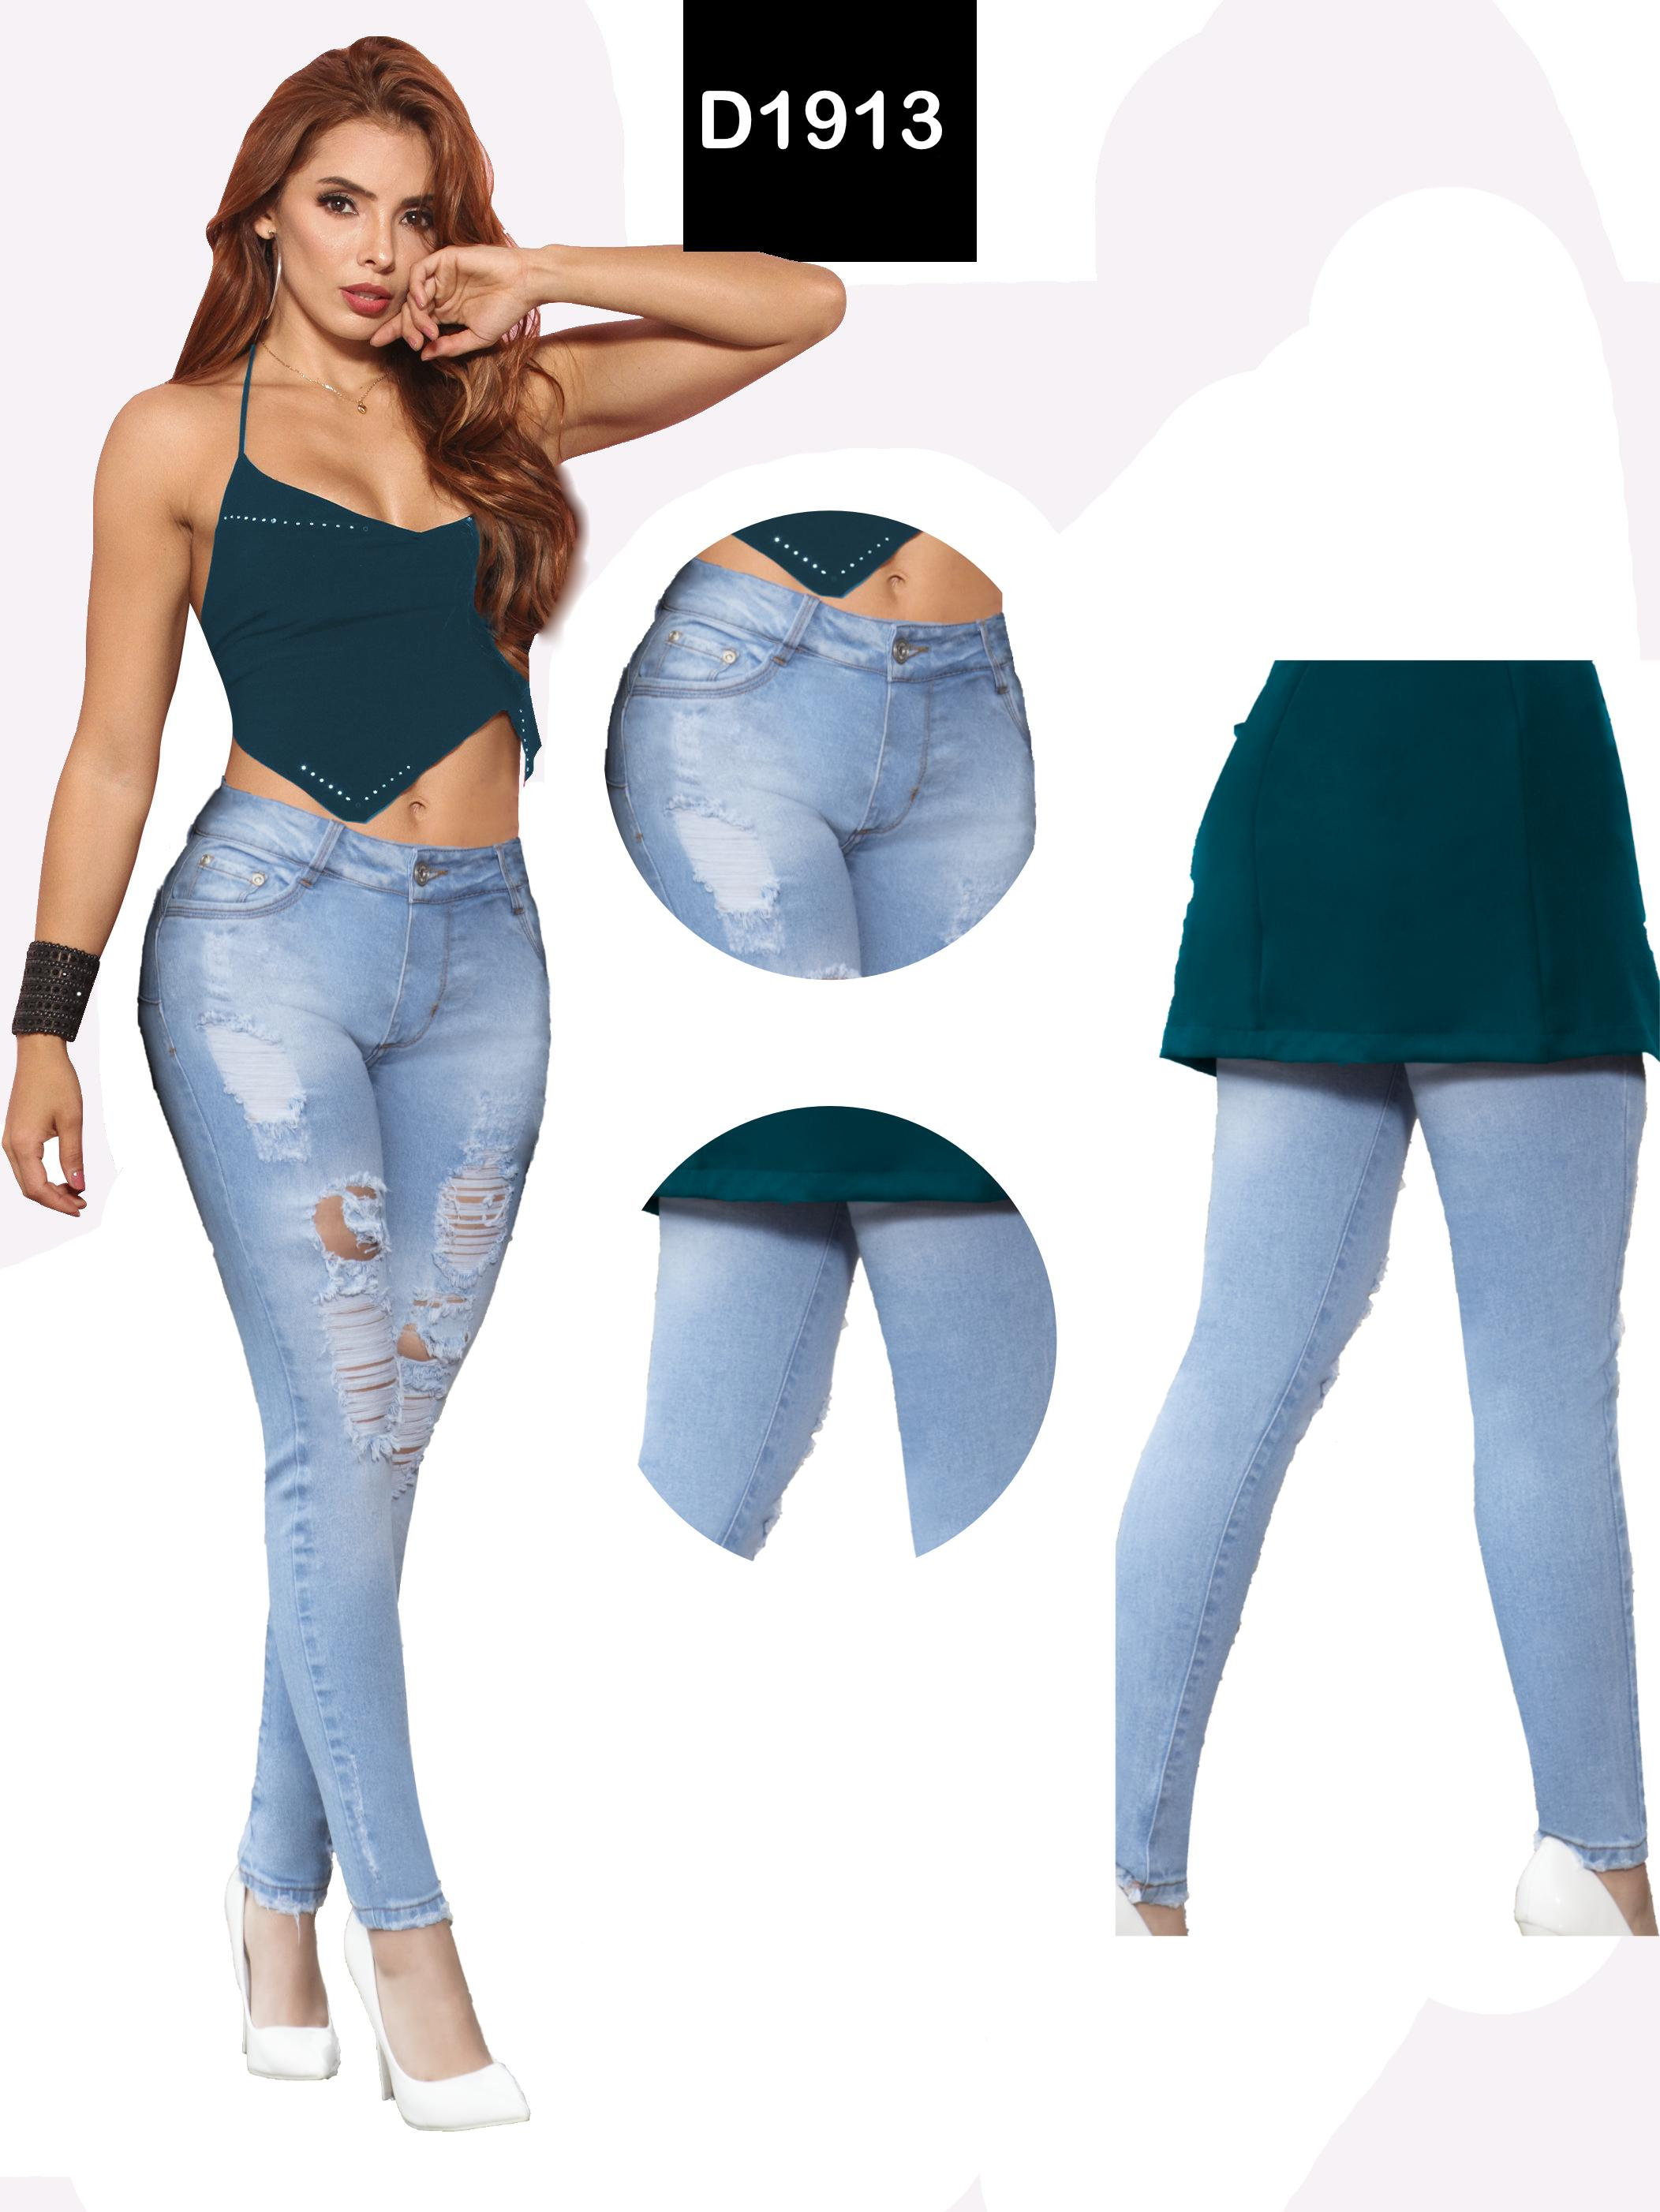 Colombian Jean Raises Fashion Tail With Destroyer Wear